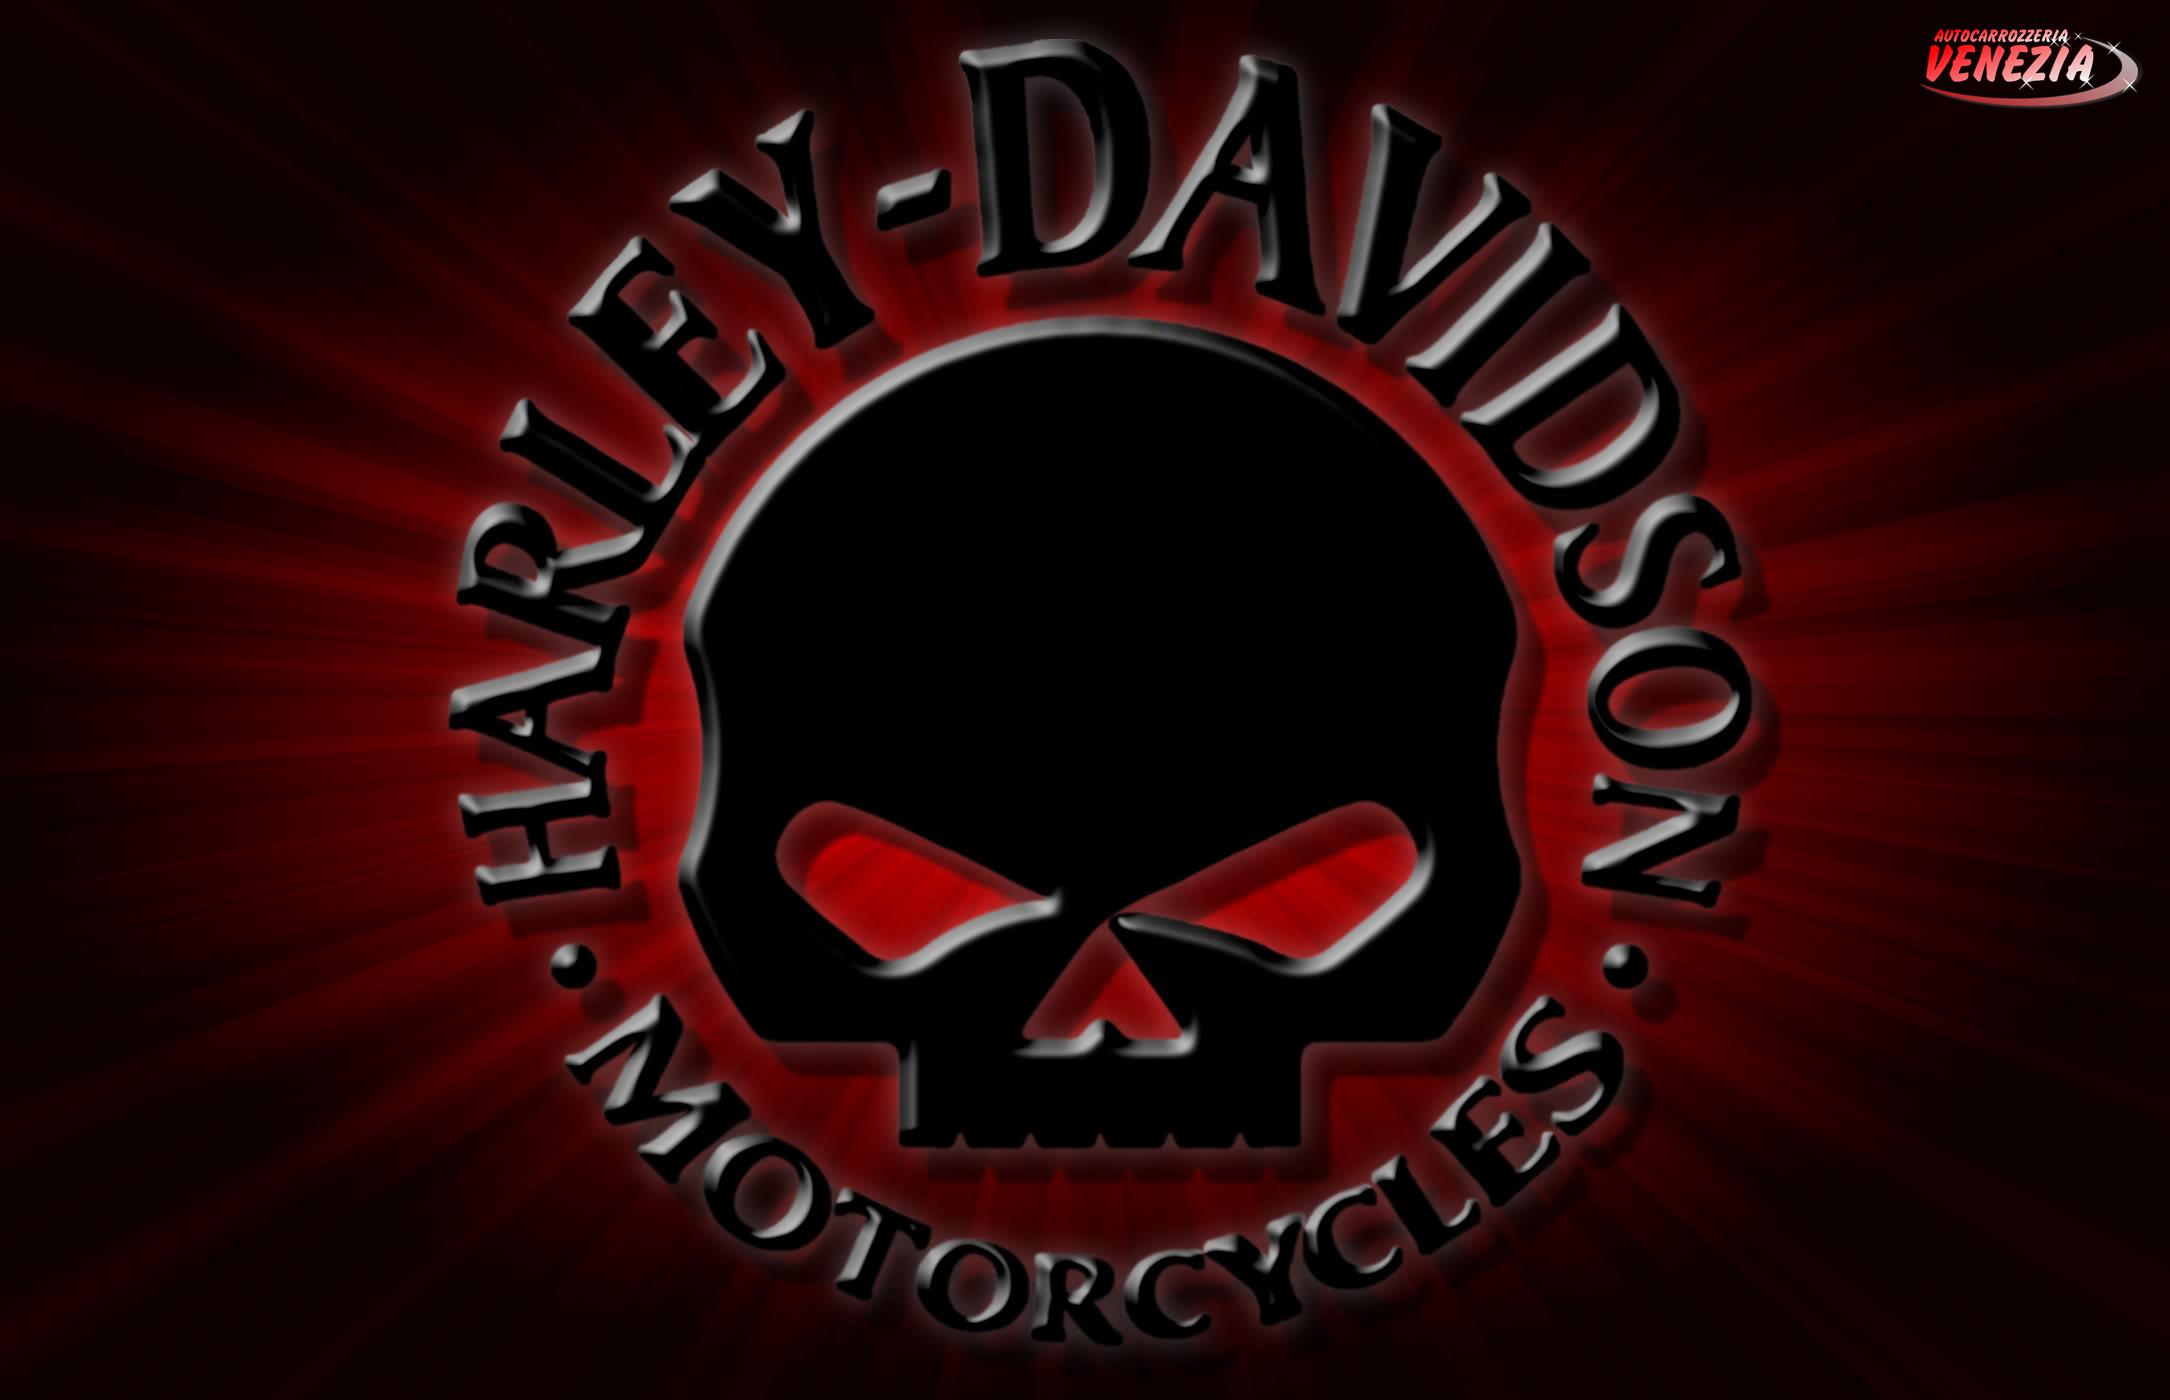 Harley Davidson Willie G Wallpaper - WallpaperSafari